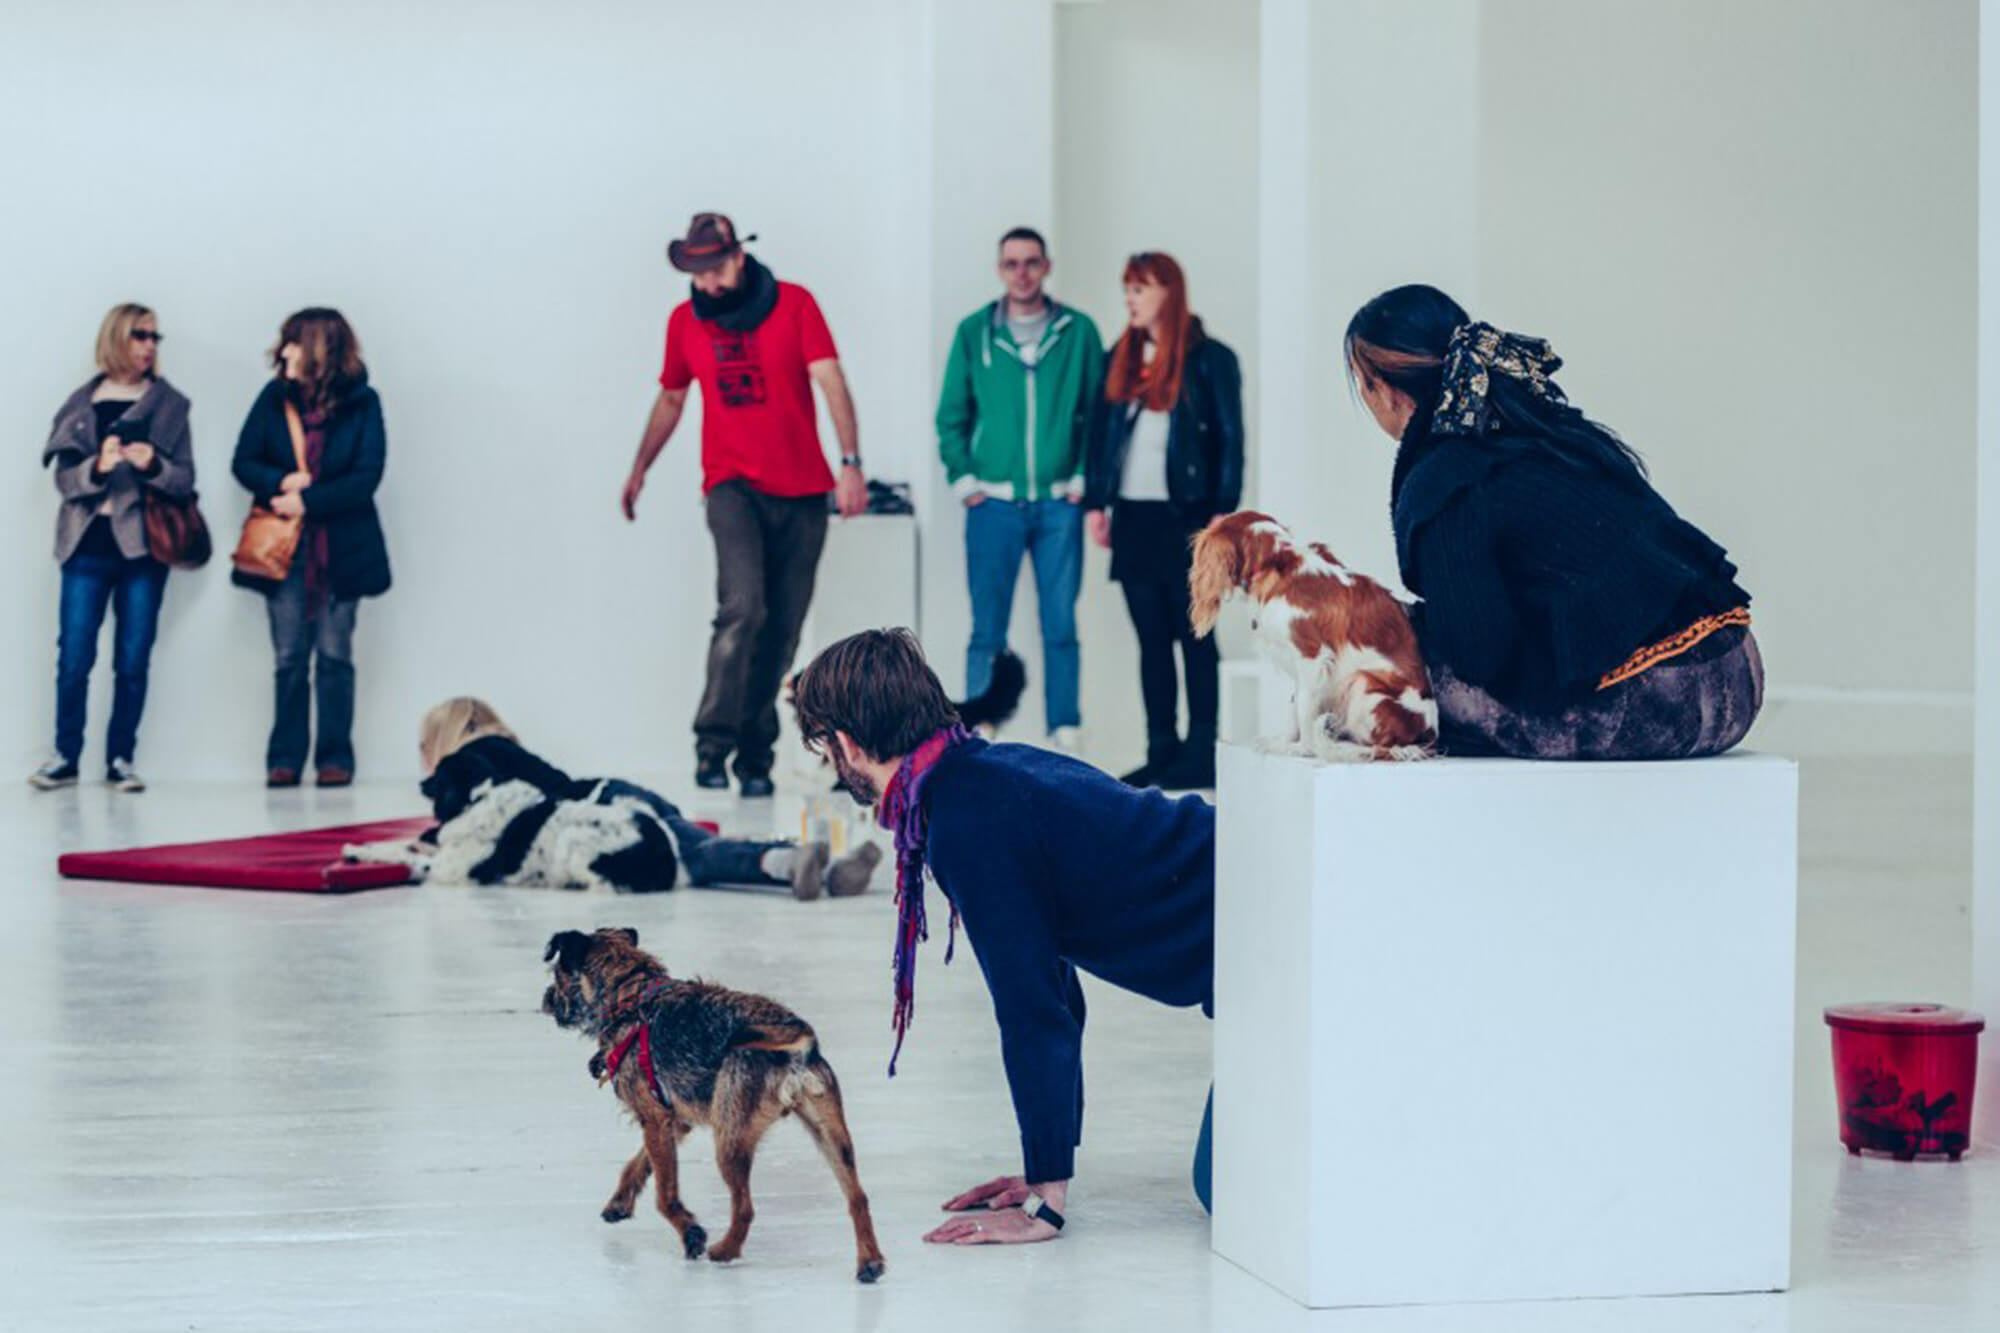 Group of people in a white room standing and lying on the floor amongst three dogs.